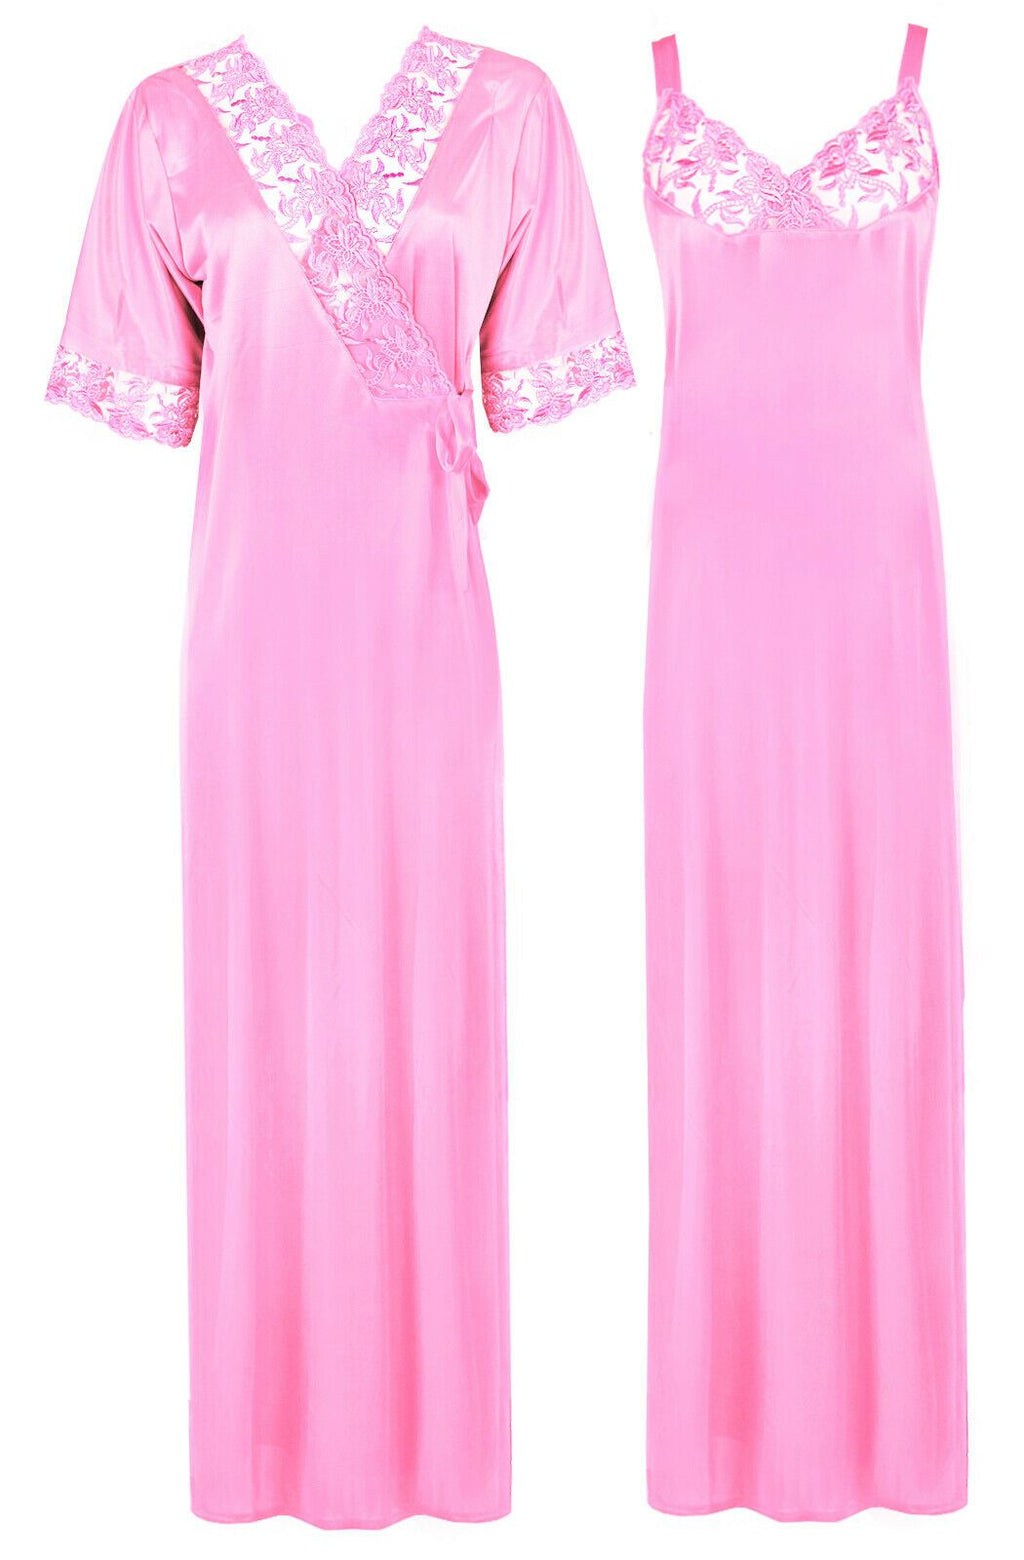 Woman's Satin Nighty With Robe 2 Pcs Set [colour]- Hautie UK, #Nightfashion | #Underfashion